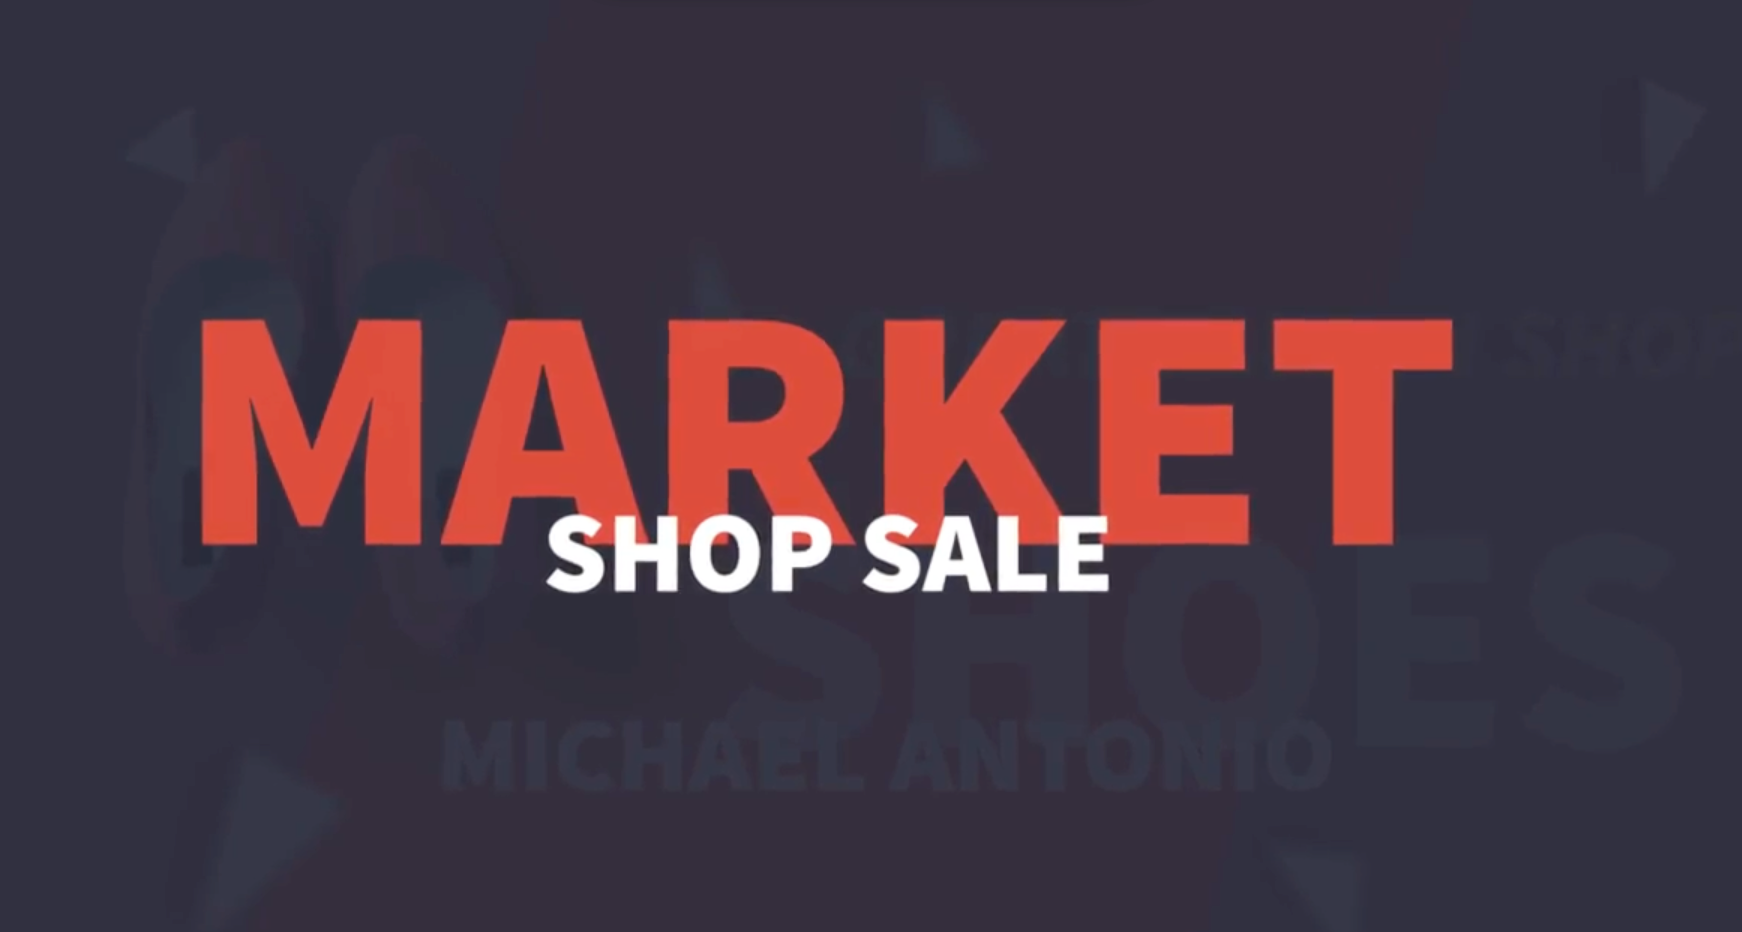 Market Shop Sale Fb